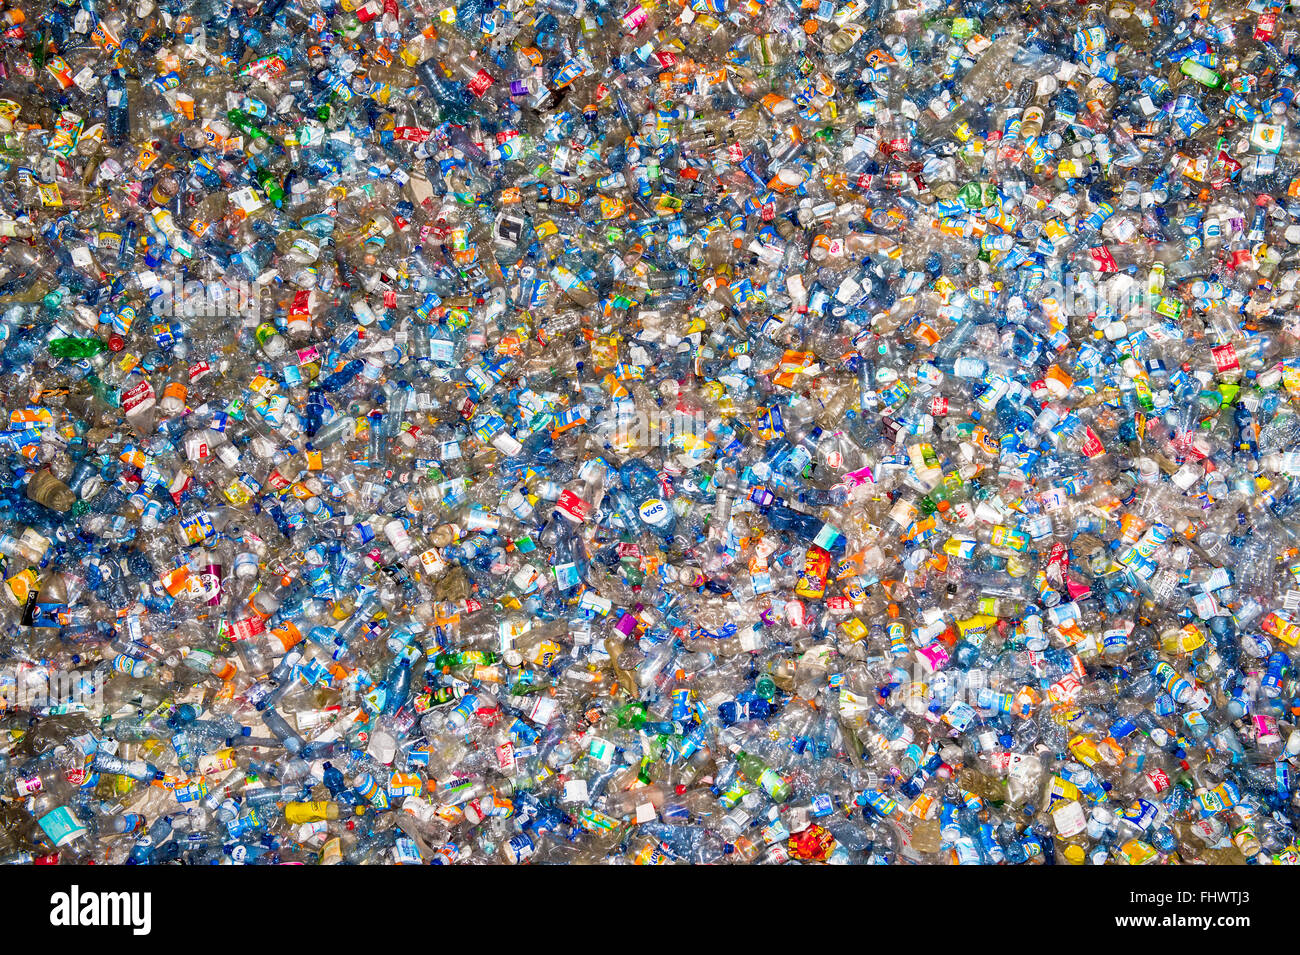 """Amsterdam, The Netherlands, 26th February 2016: 100,000 plastic bottles at the installation """"Plastic Soup"""". The Stock Photo"""